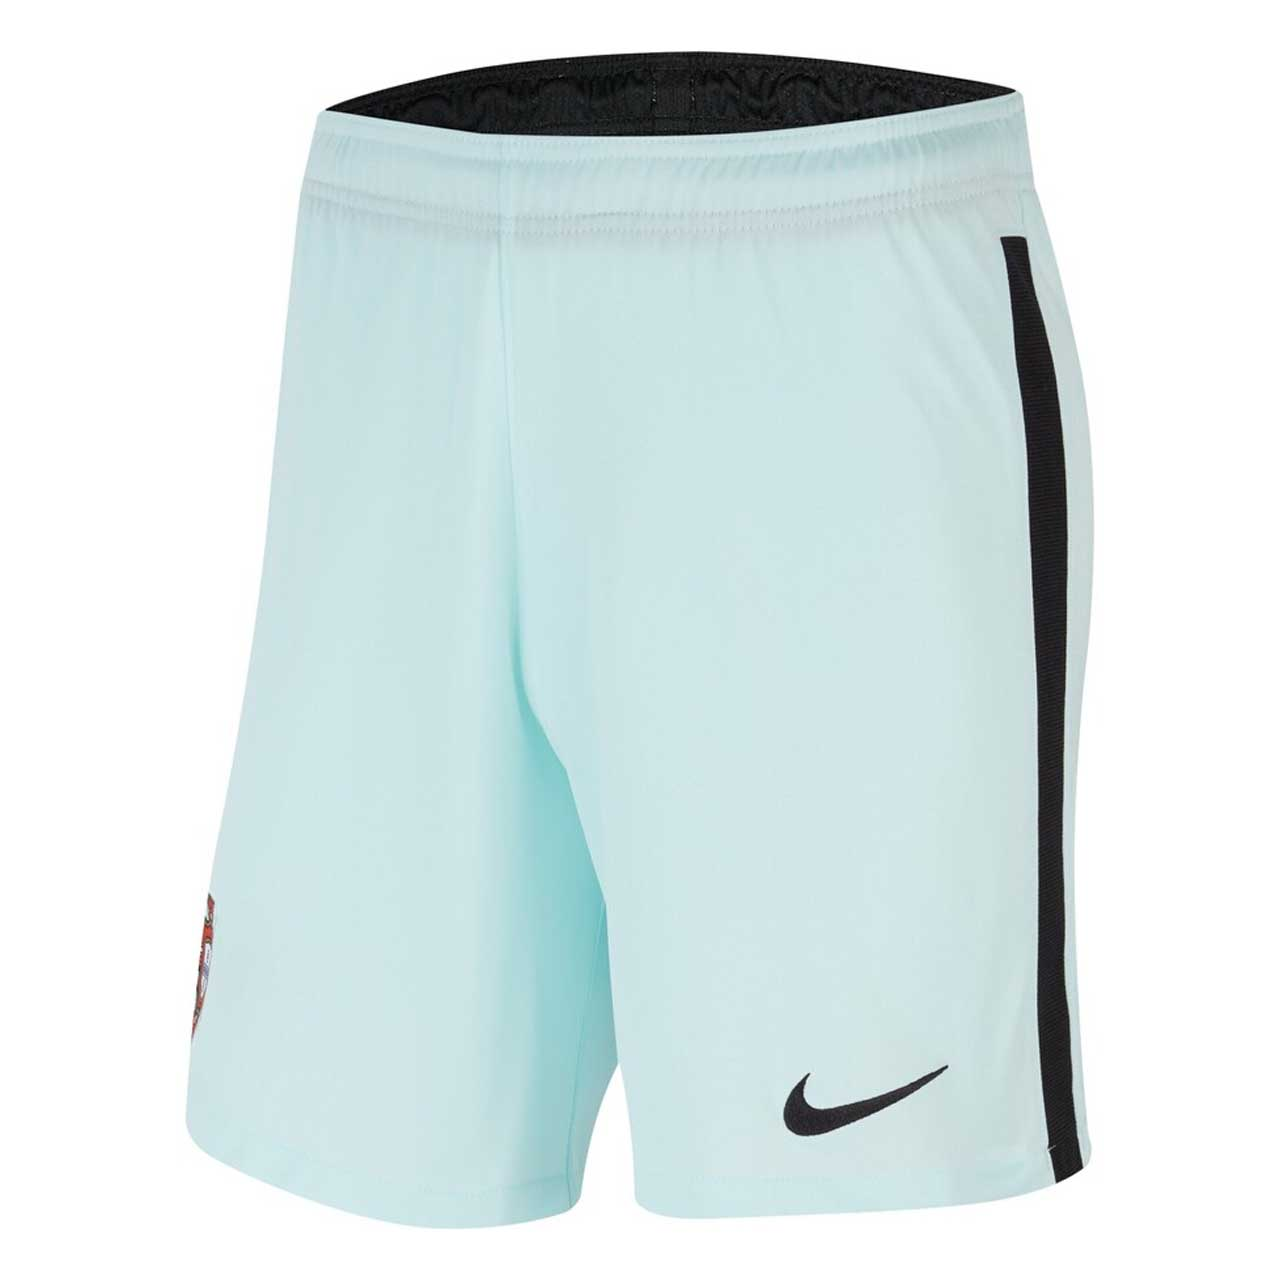 2020-2021 Portugal Nike Away Shorts (Teal Tint)